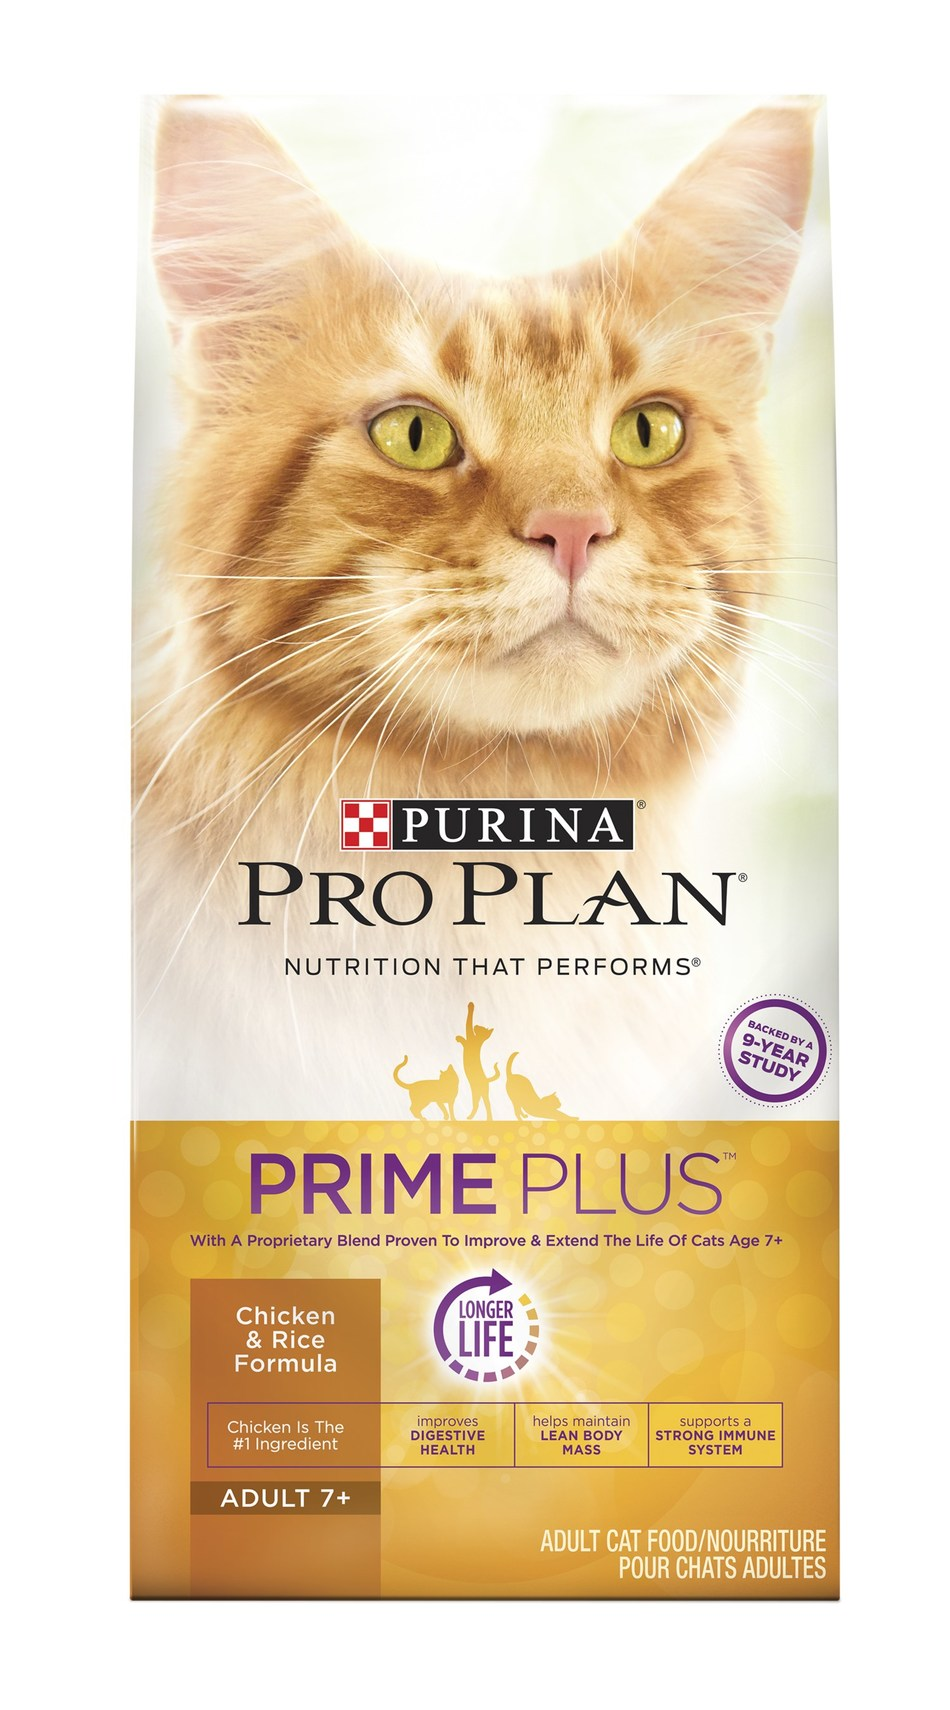 Purina Pro Plan PRIME PLUS Adult 7+